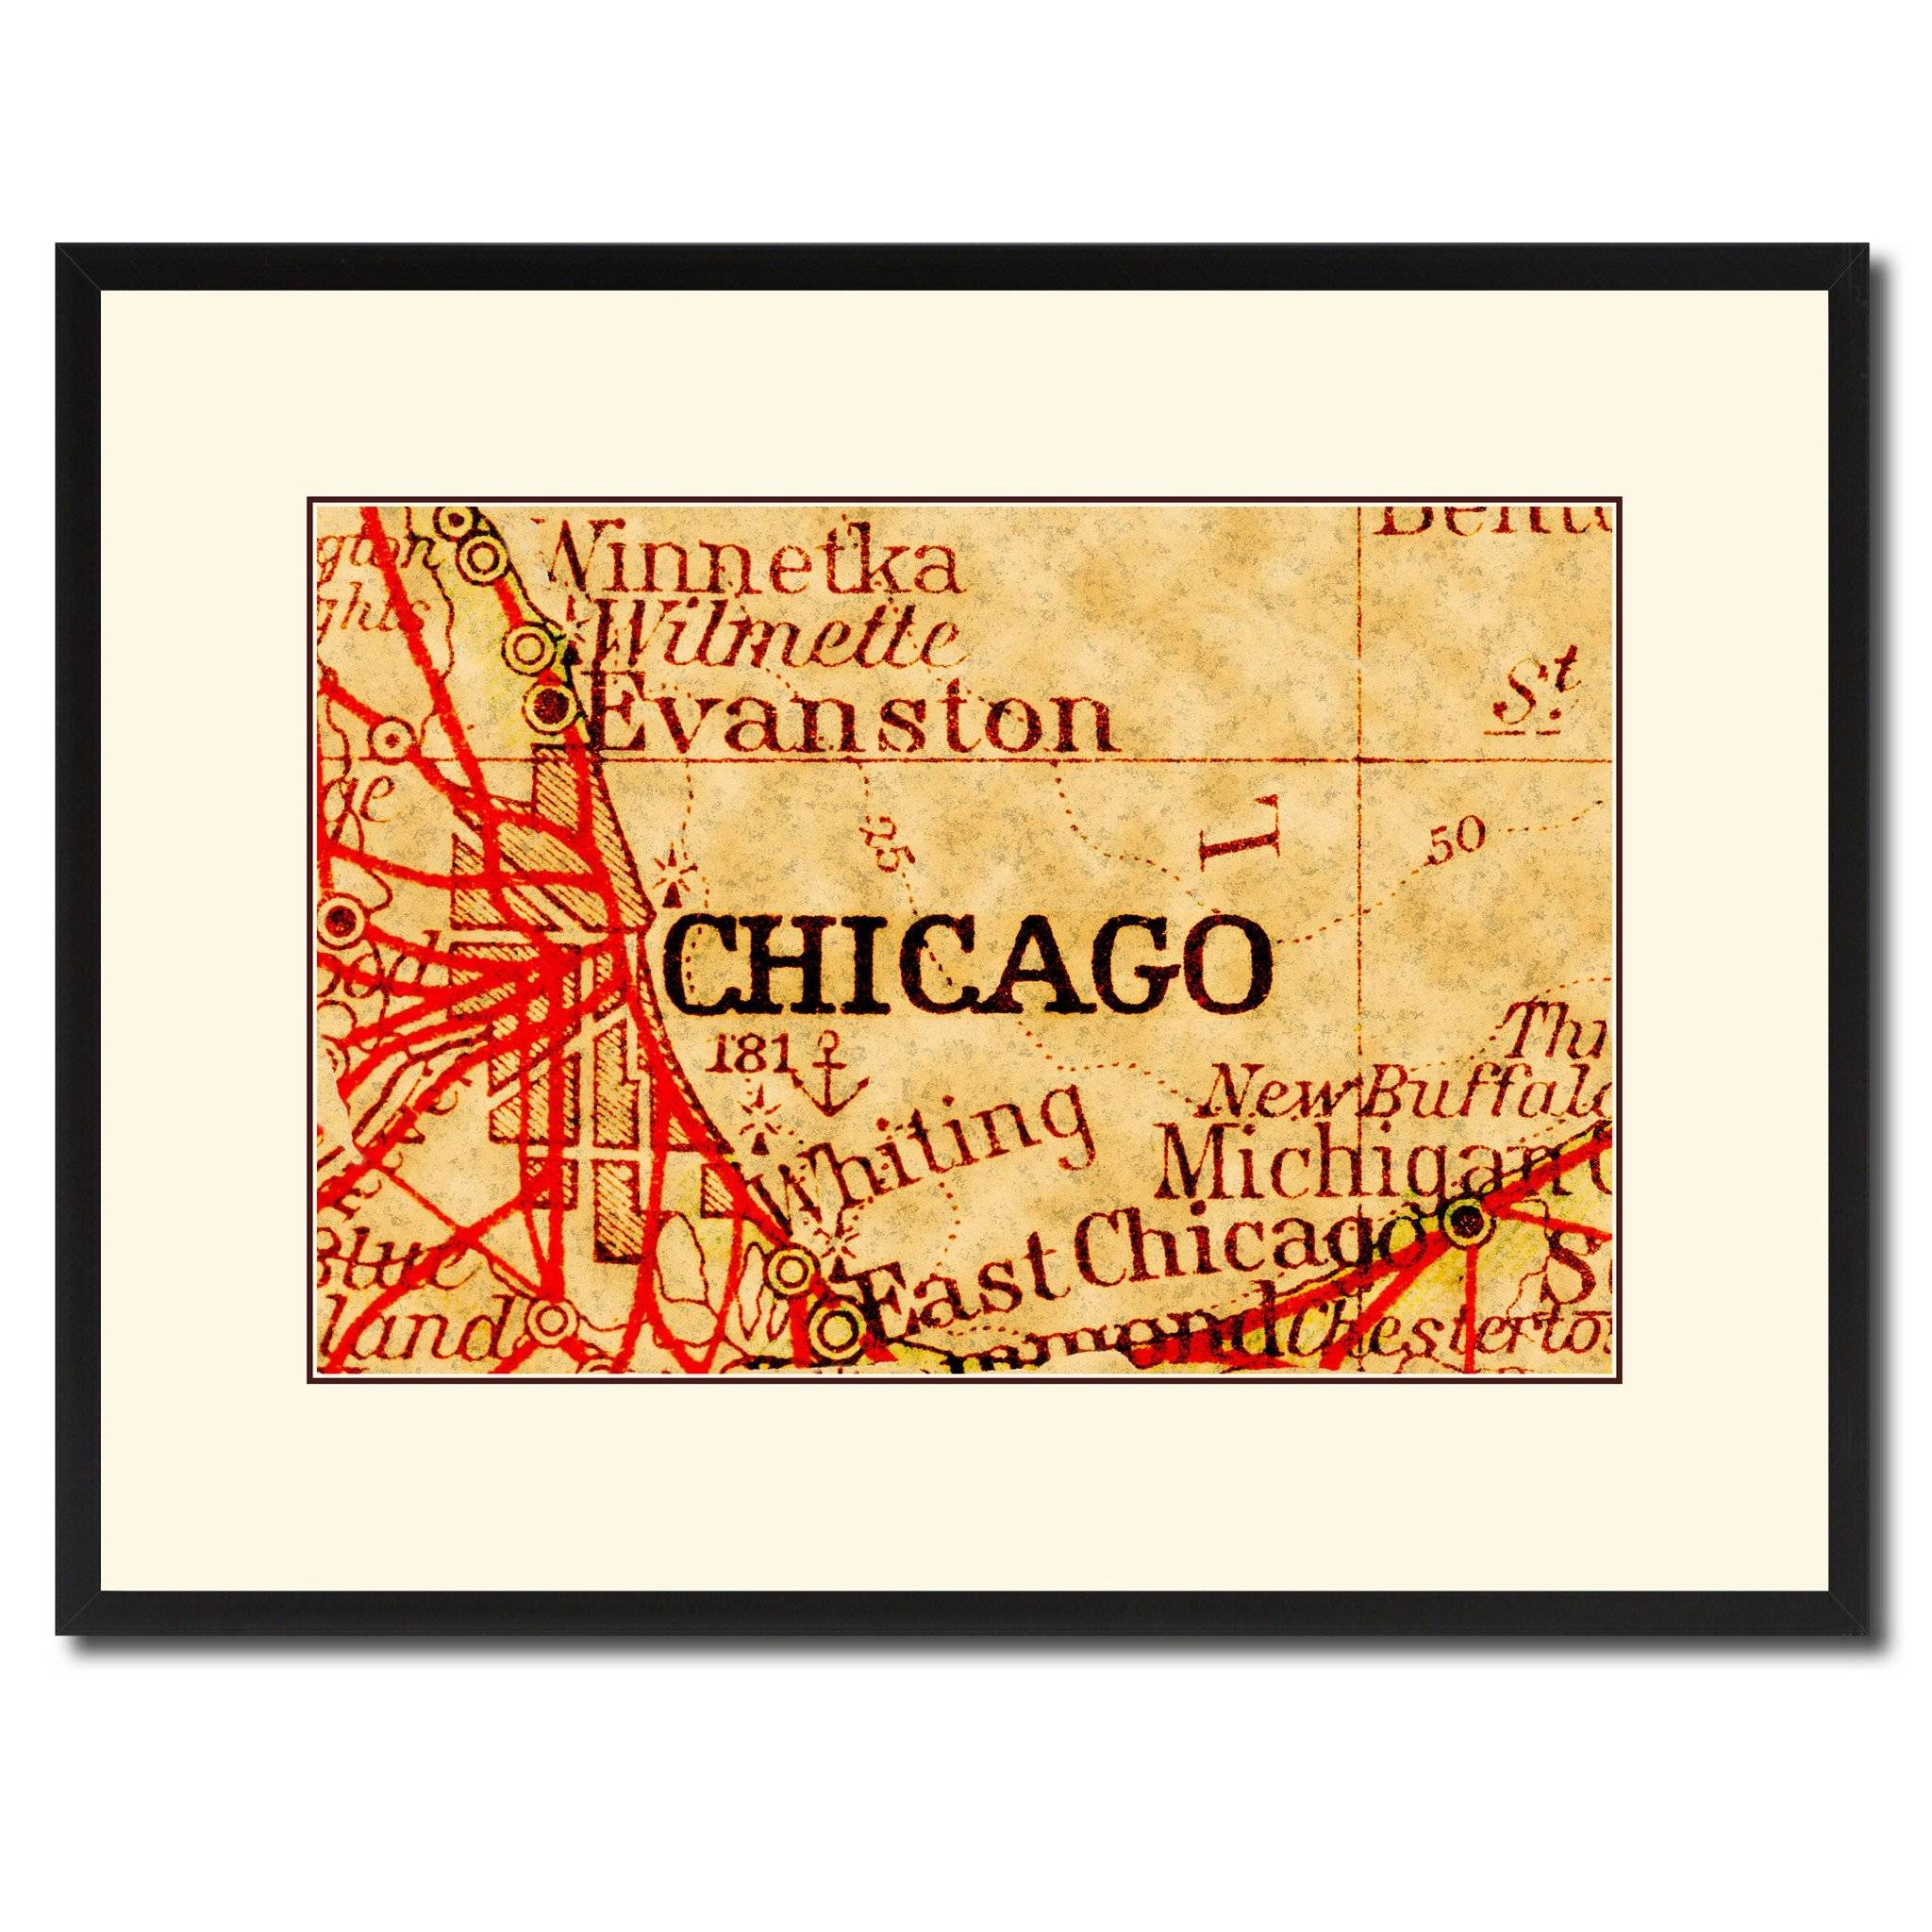 Chicago Illinois Vintage Antique Map Wall Art Home Decor Gift Within 2018 Vintage Map Wall Art (View 4 of 20)